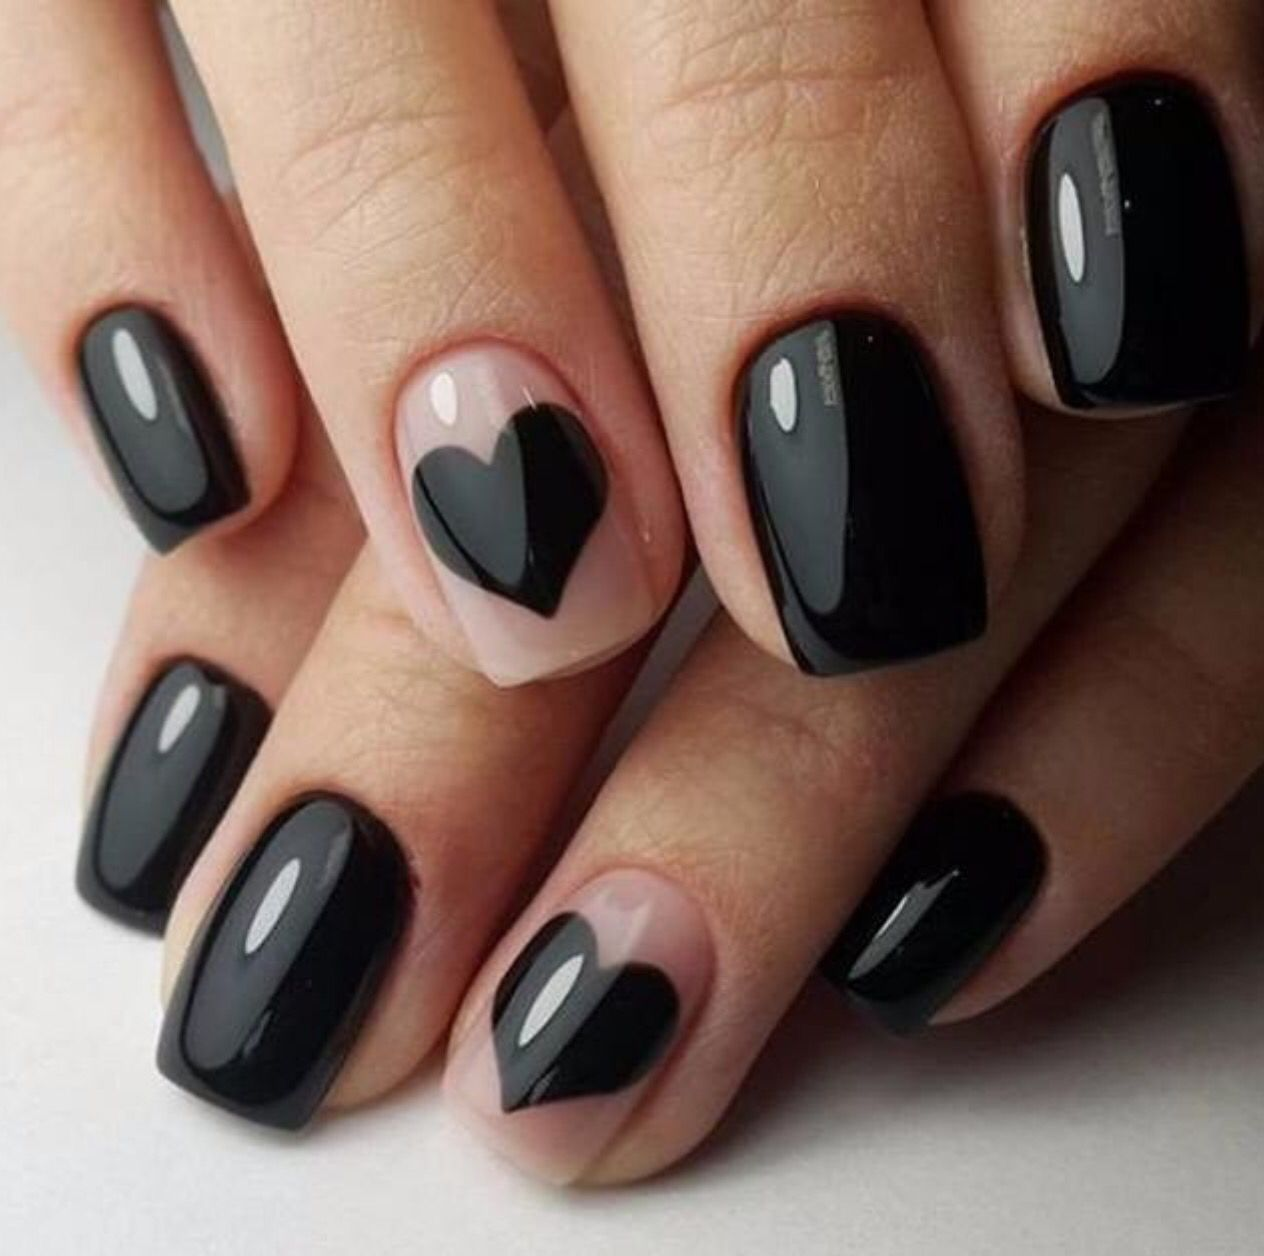 Pin by Polina001500 on Nails✨ | Pinterest